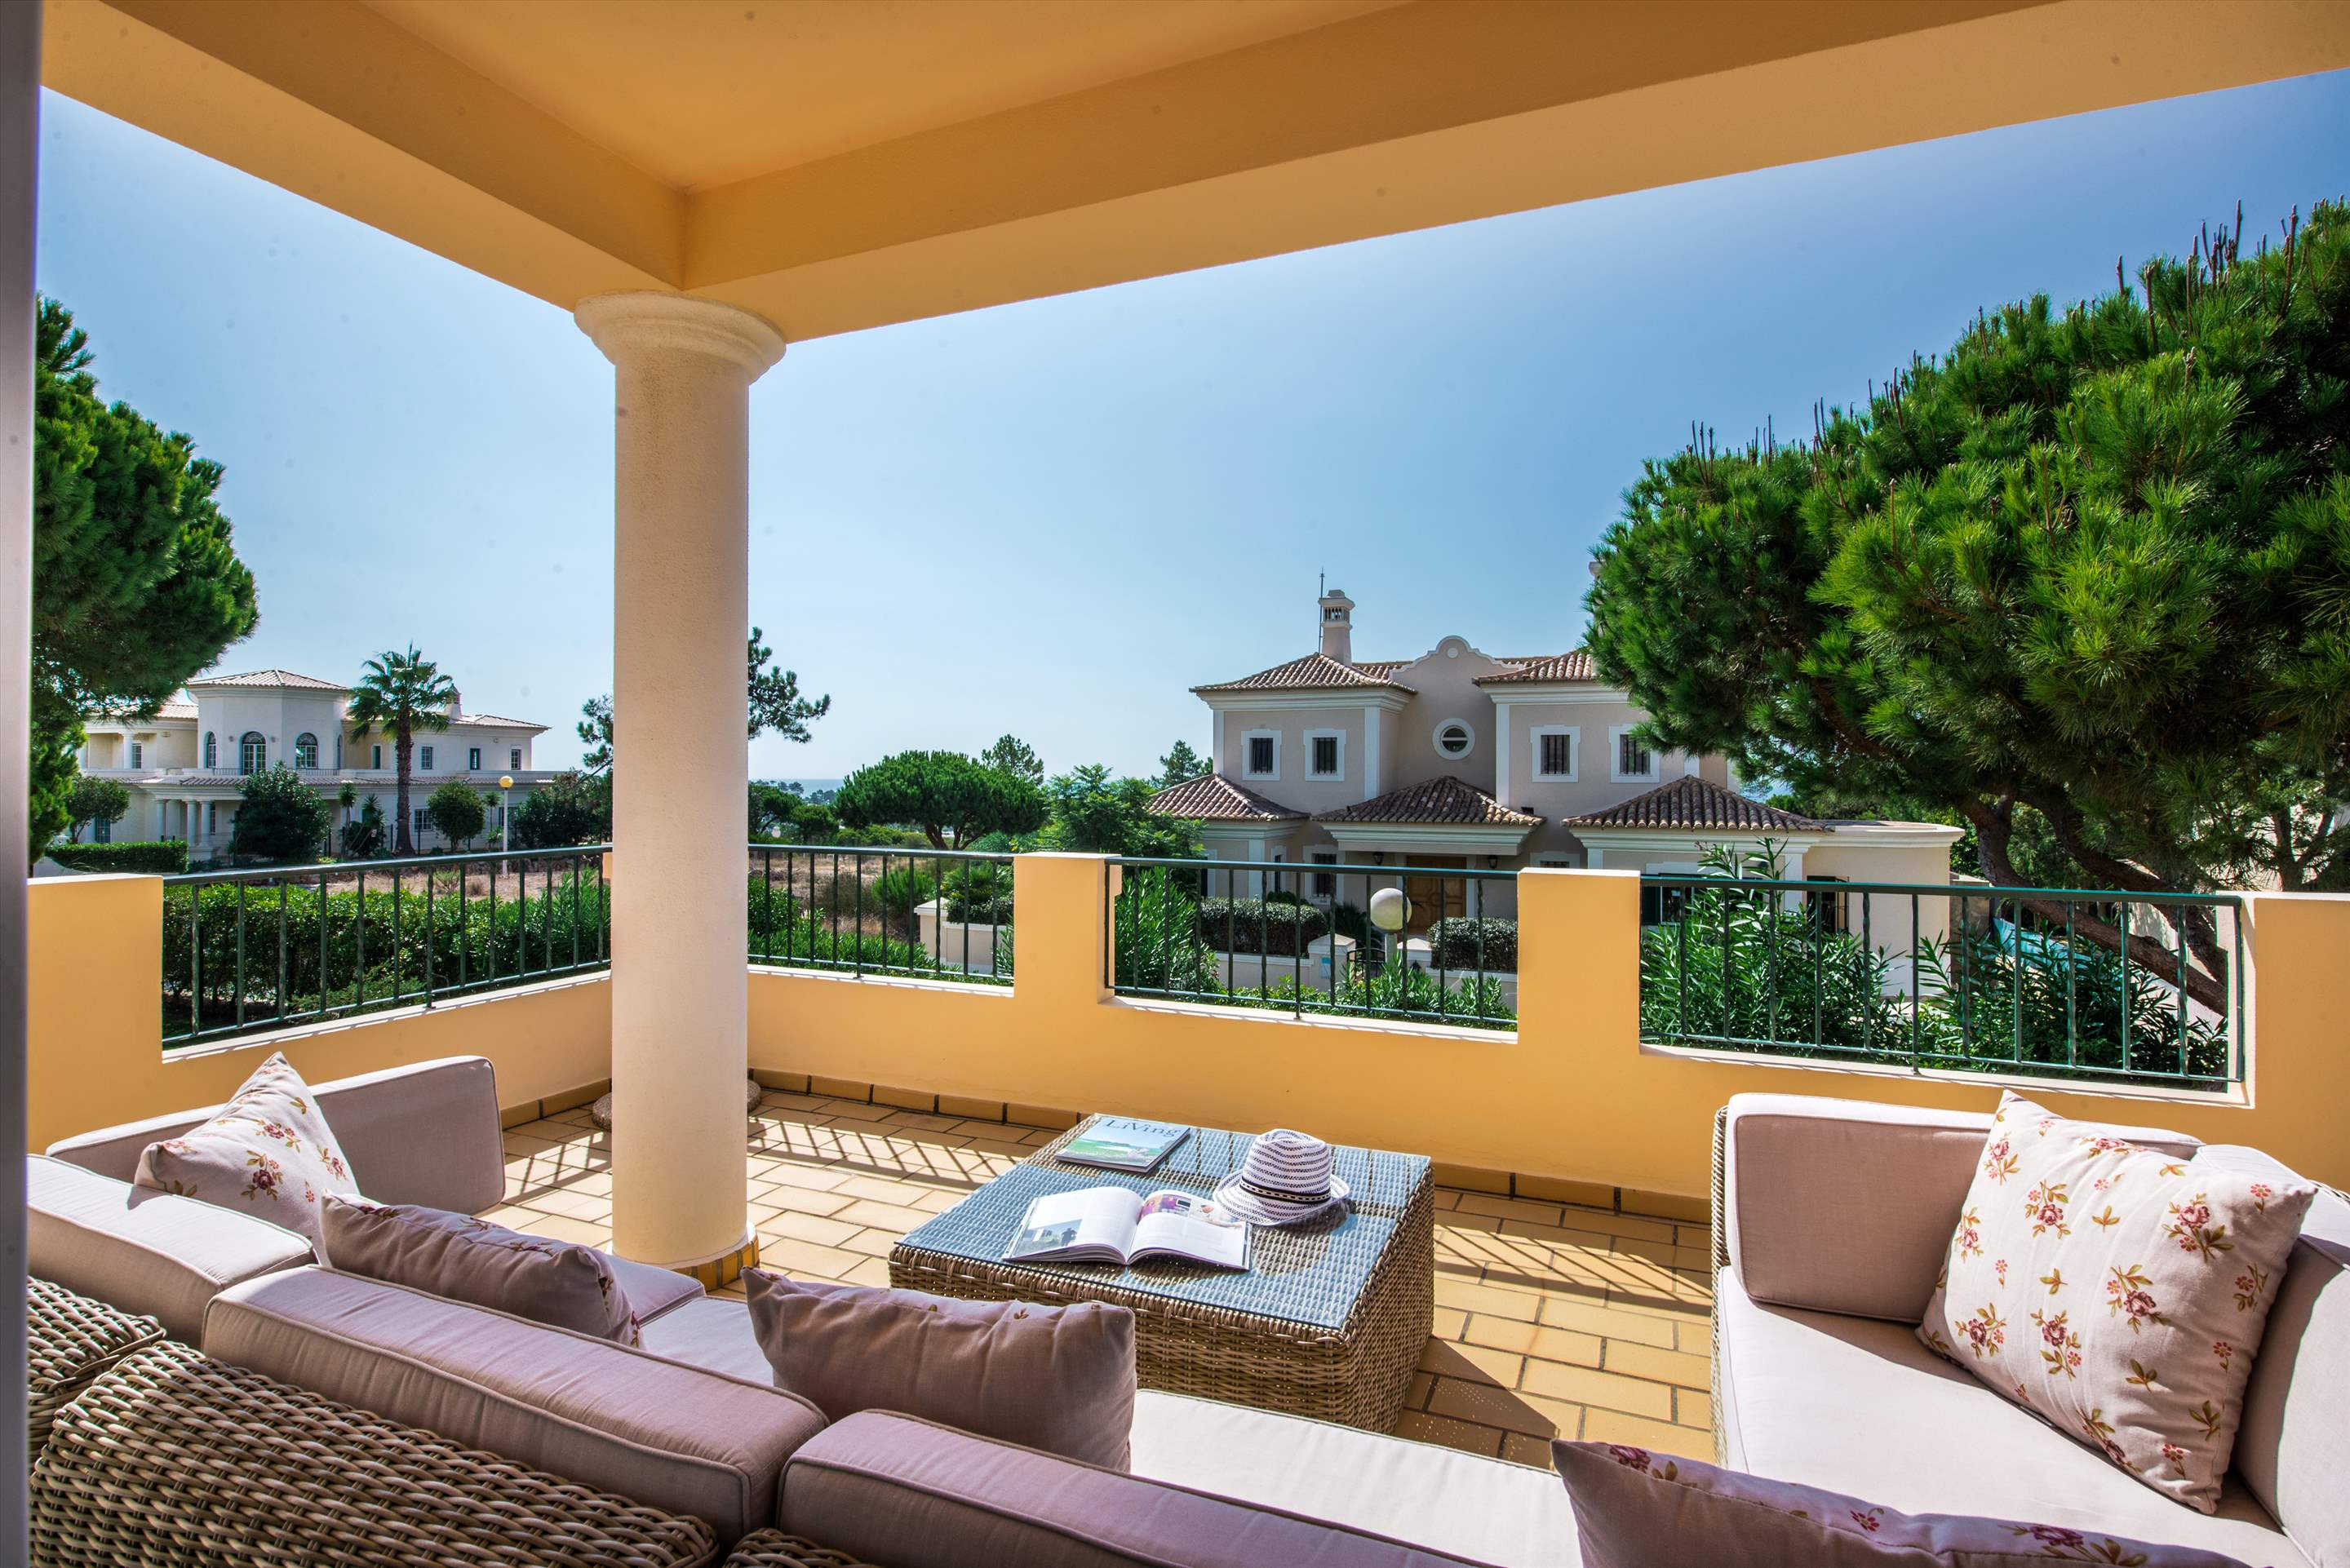 Casa da Encosta, 4 bedroom villa in Vale do Lobo, Algarve Photo #11